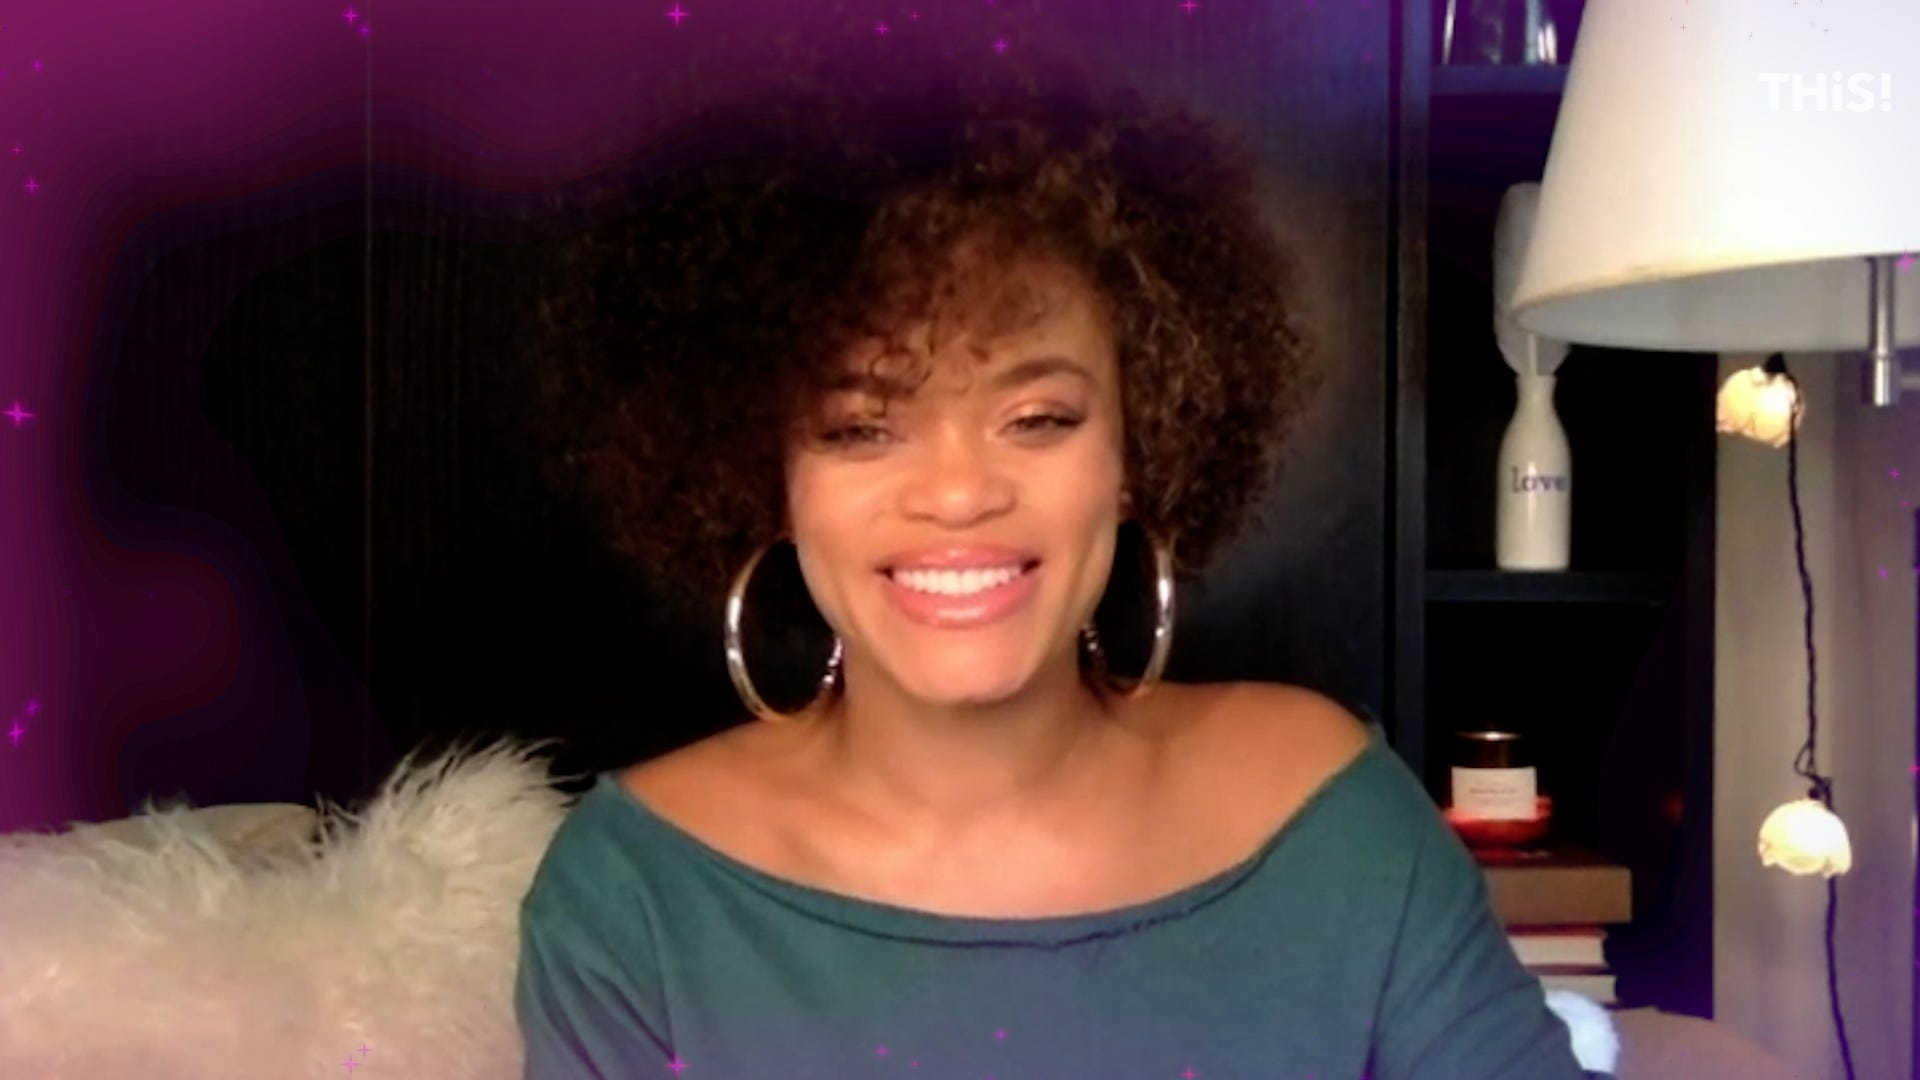 'Sometimes it can feel heavy': Andra Day on being a black woman, playing Billie Holiday